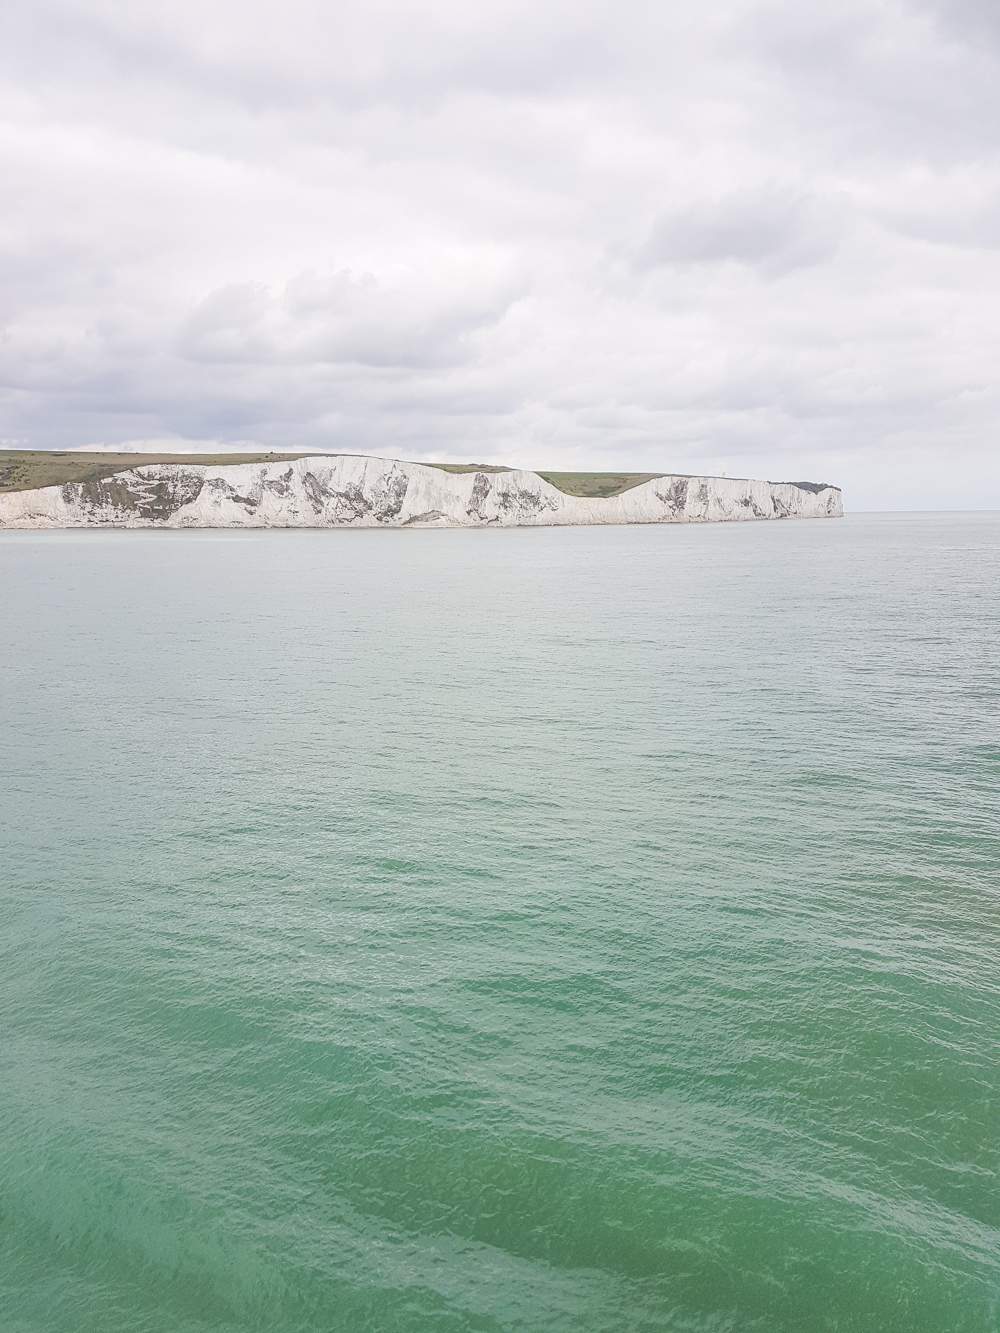 White Cliffs of Dover from Ferry